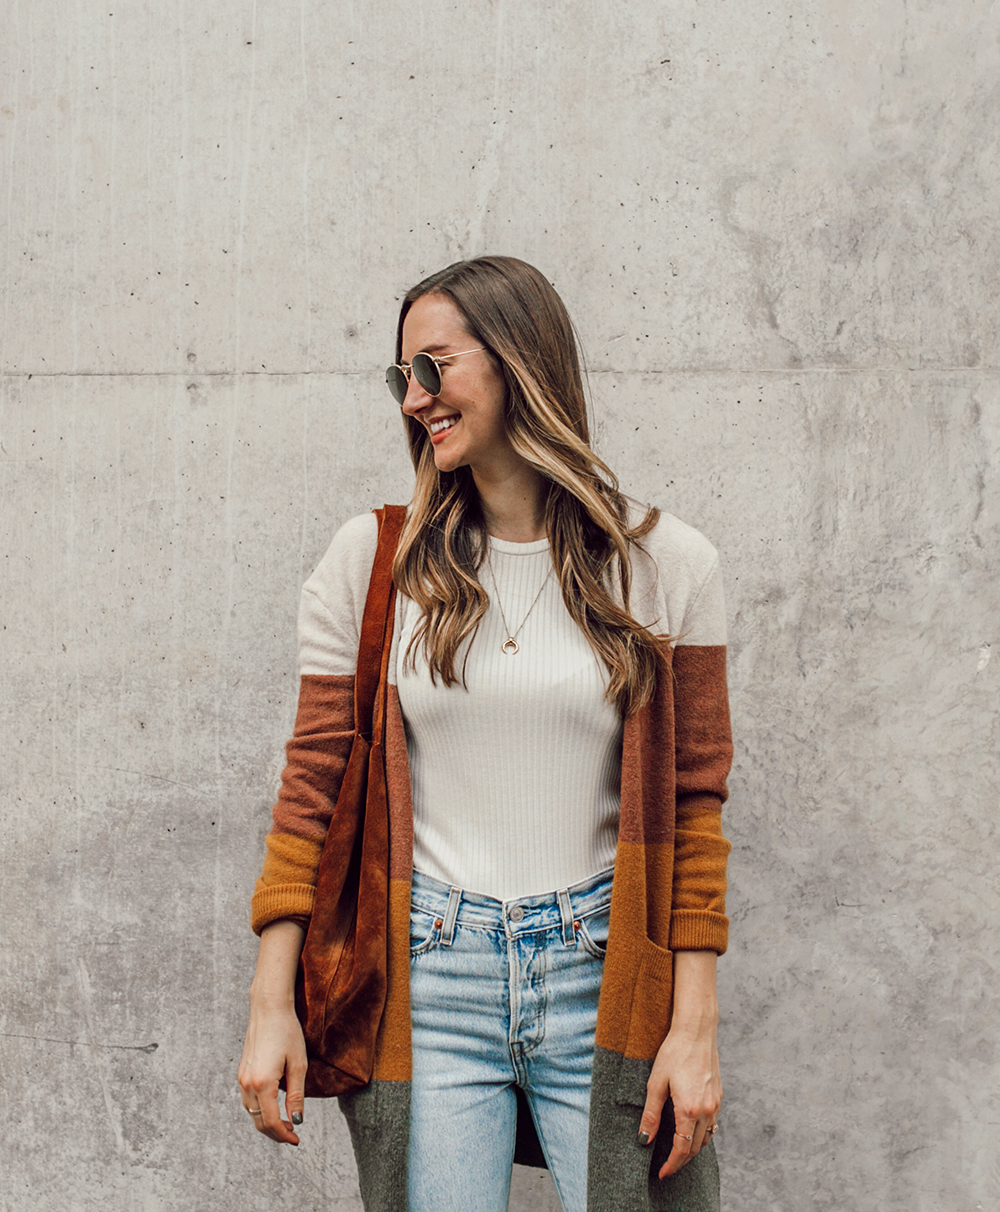 livvyland-blog-olivia-watson-austin-texas-fashion-lifestyle-blogger-nisolo-james-oxford-fall-outfit-idea-madewell-kent-cardigan-11